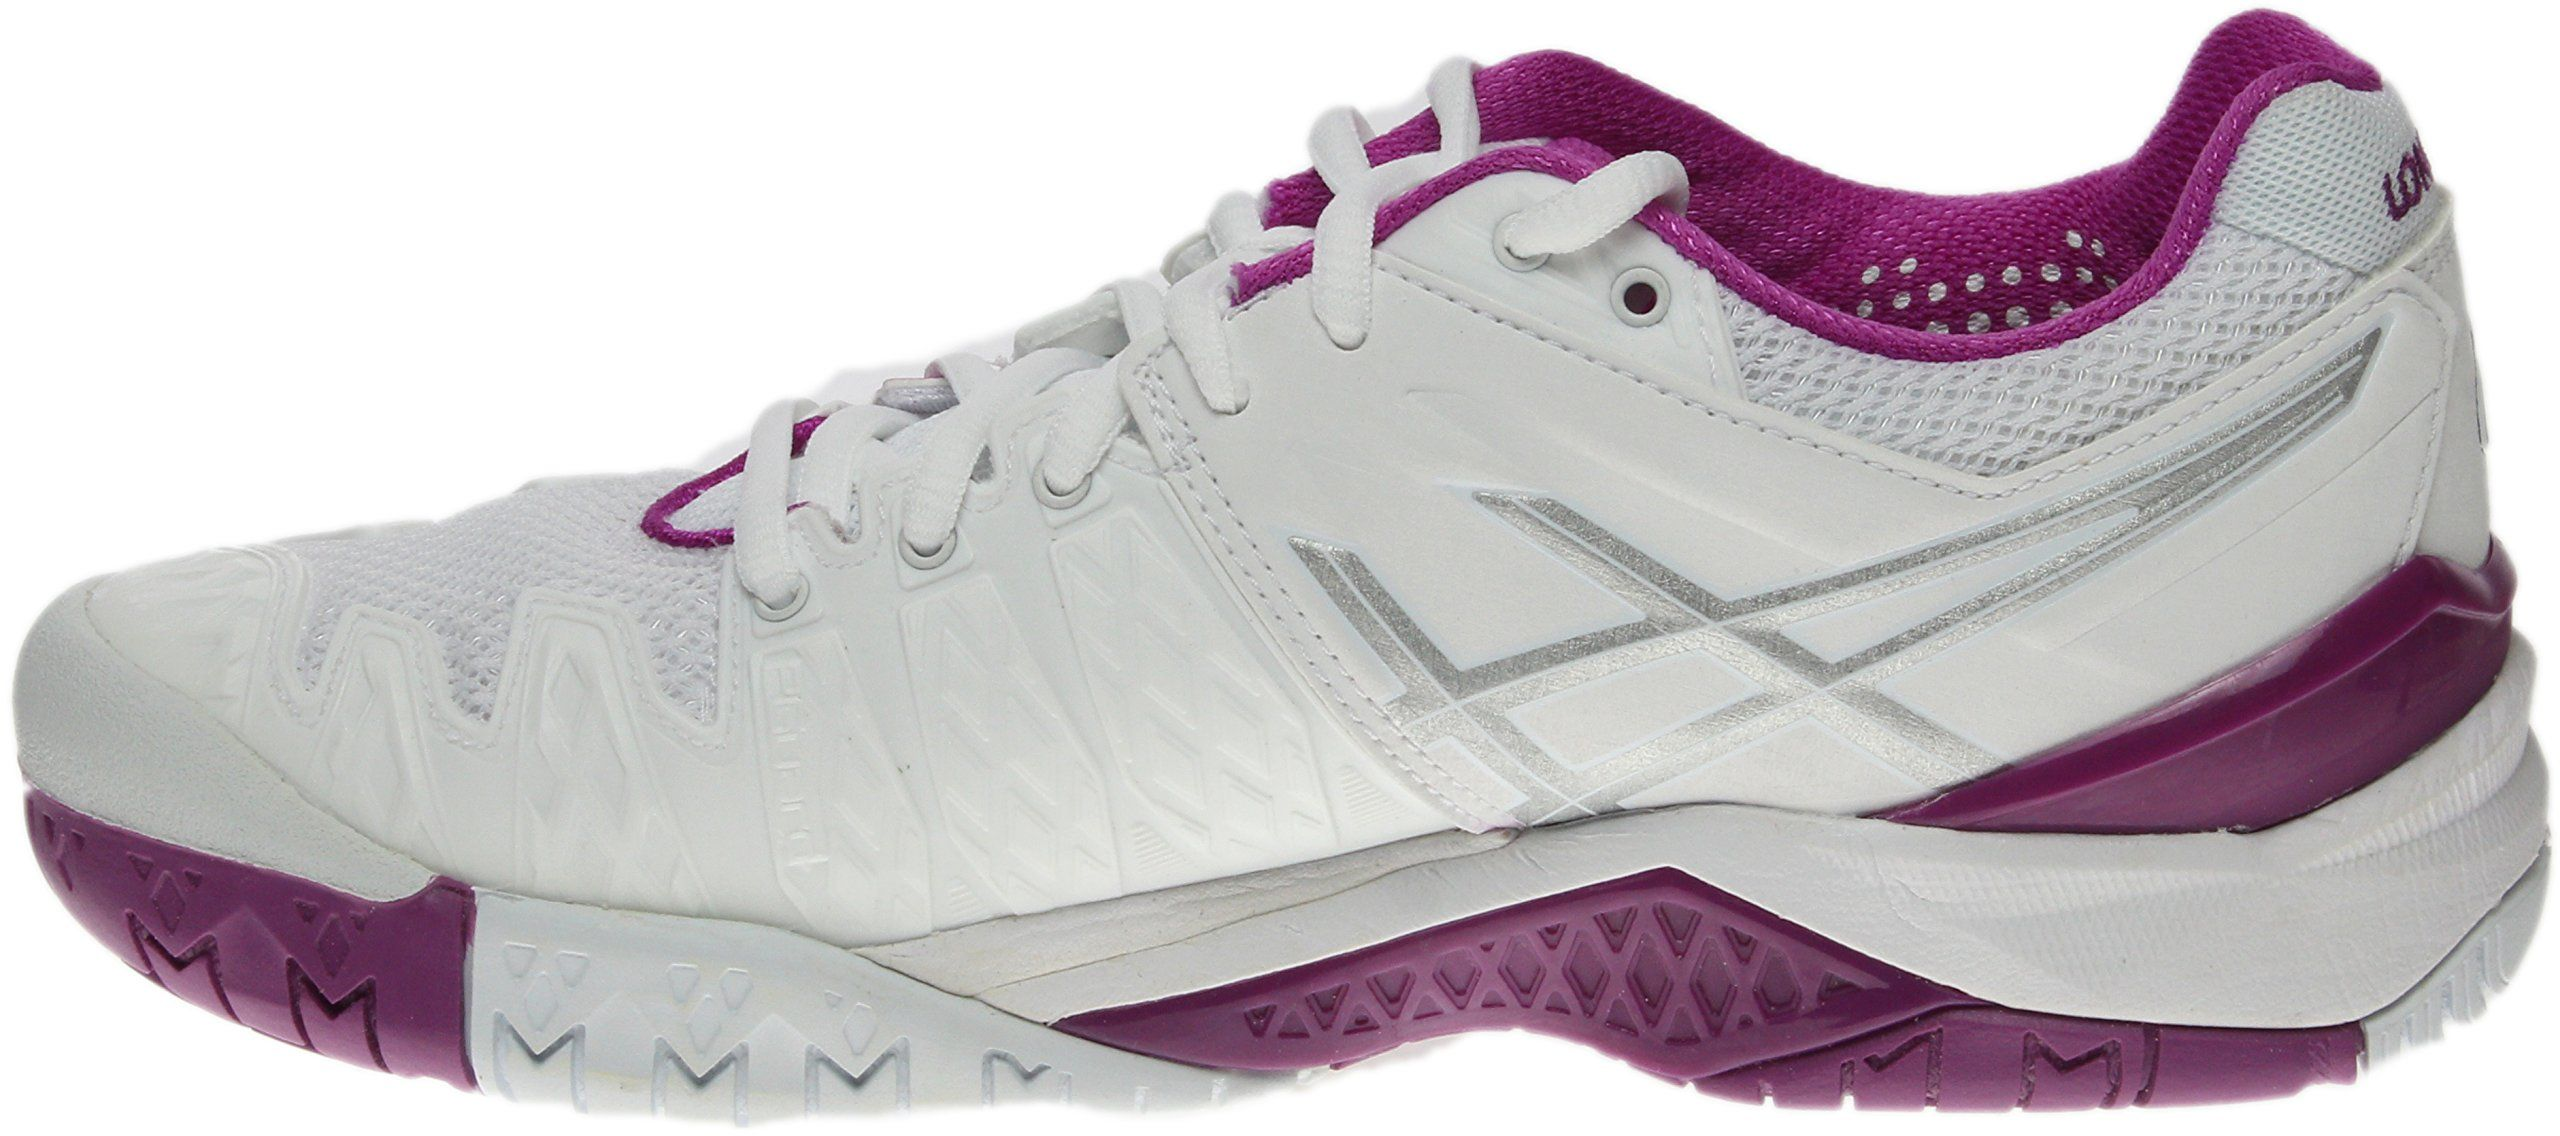 ASICS GelResolution 6 L.E. London Womens Tennis Shoe 11